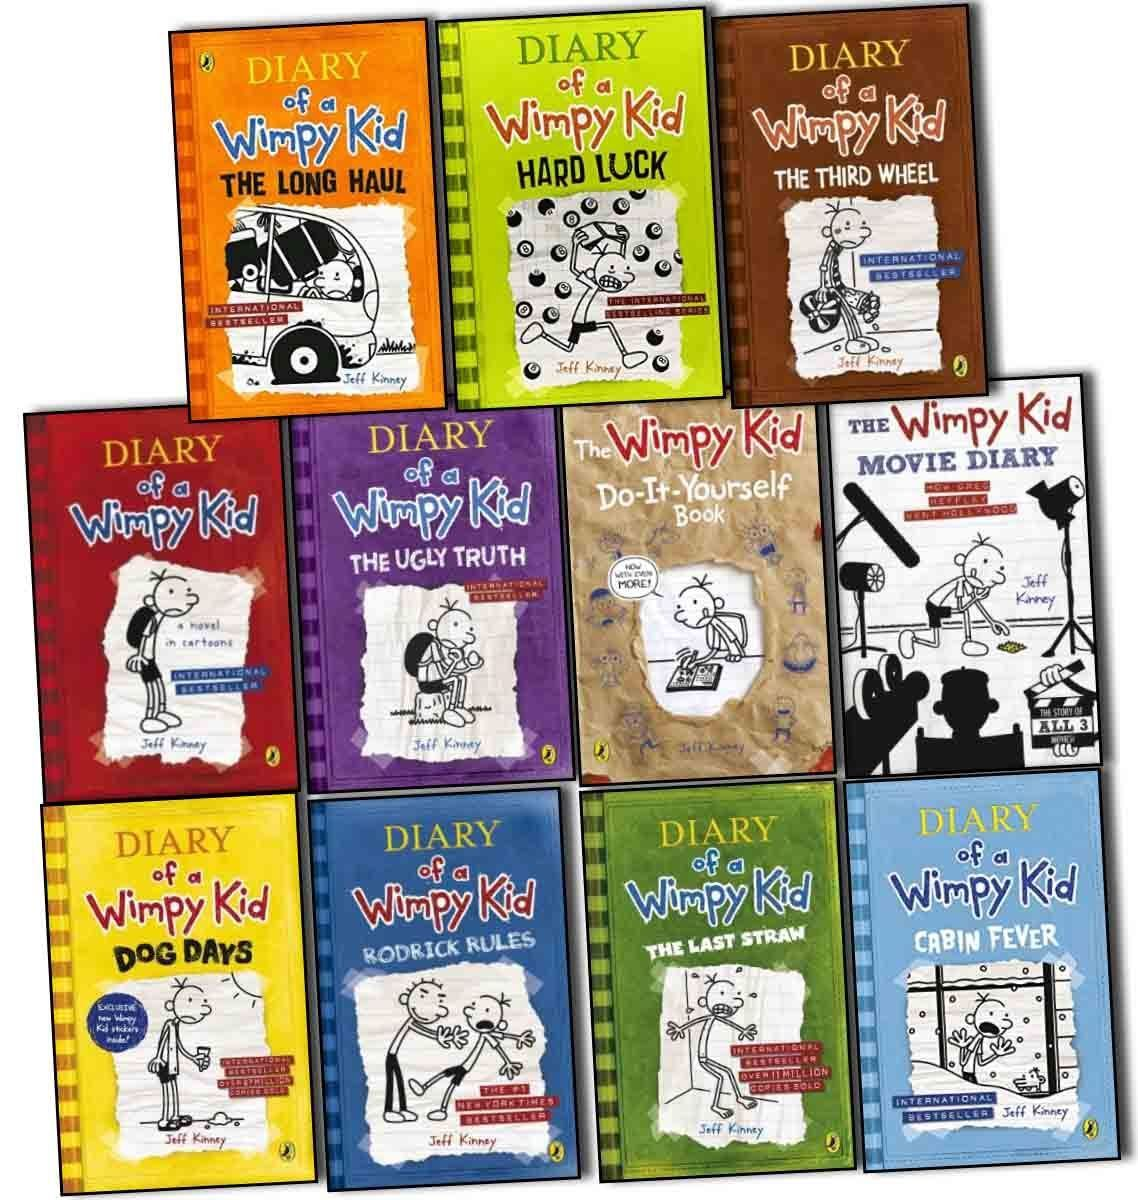 Ebook diary of a wimpy kid by jeff kinney complete collection 1 10 ebook diary of a wimpy kid by jeff kinney complete collection 1 10 pdf solutioingenieria Choice Image